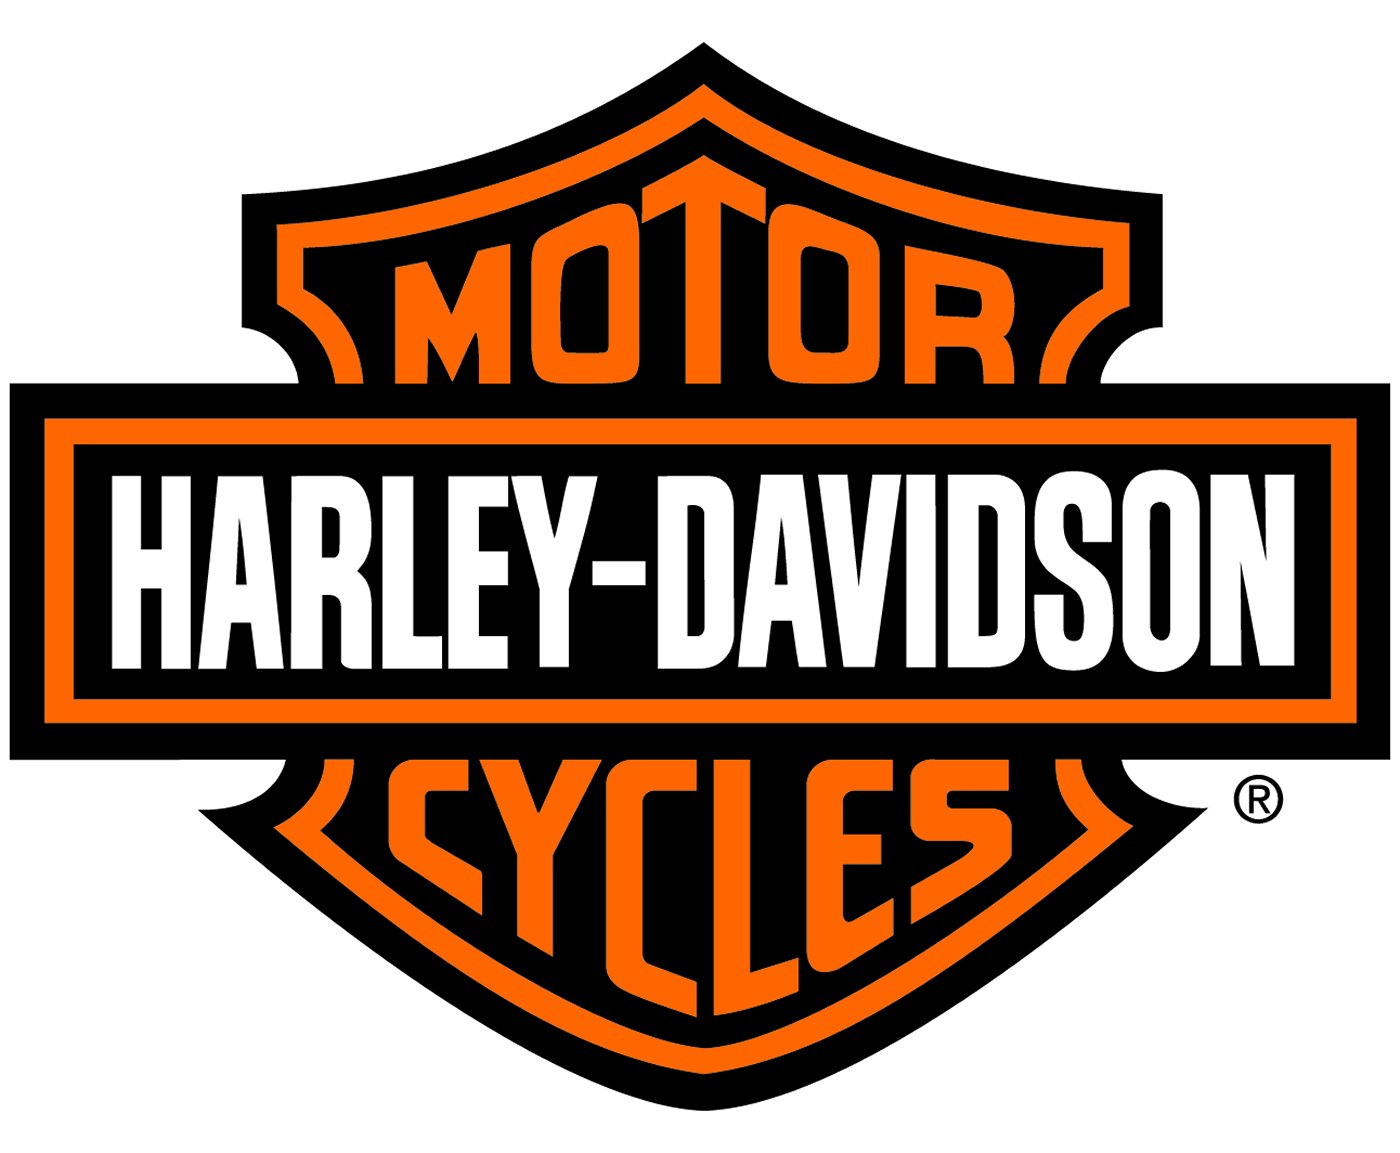 Call For Anthropological Expertise On Harley Davidson